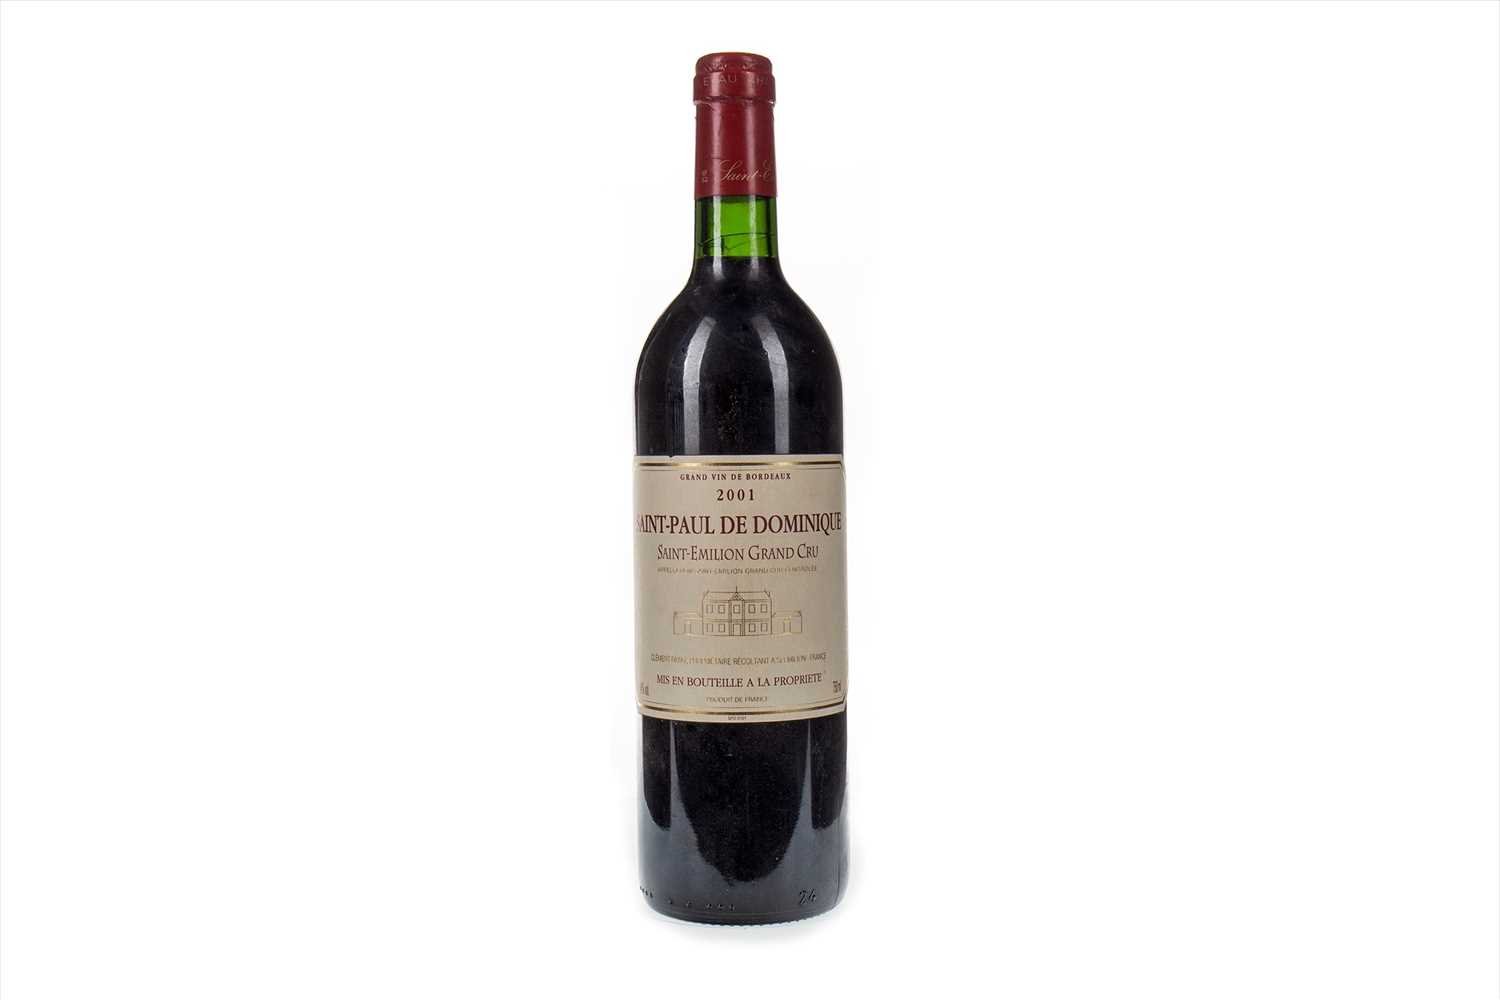 Lot 1025-SAINT-PAUL DE DOMINIQUE 2001 GRAND CRU